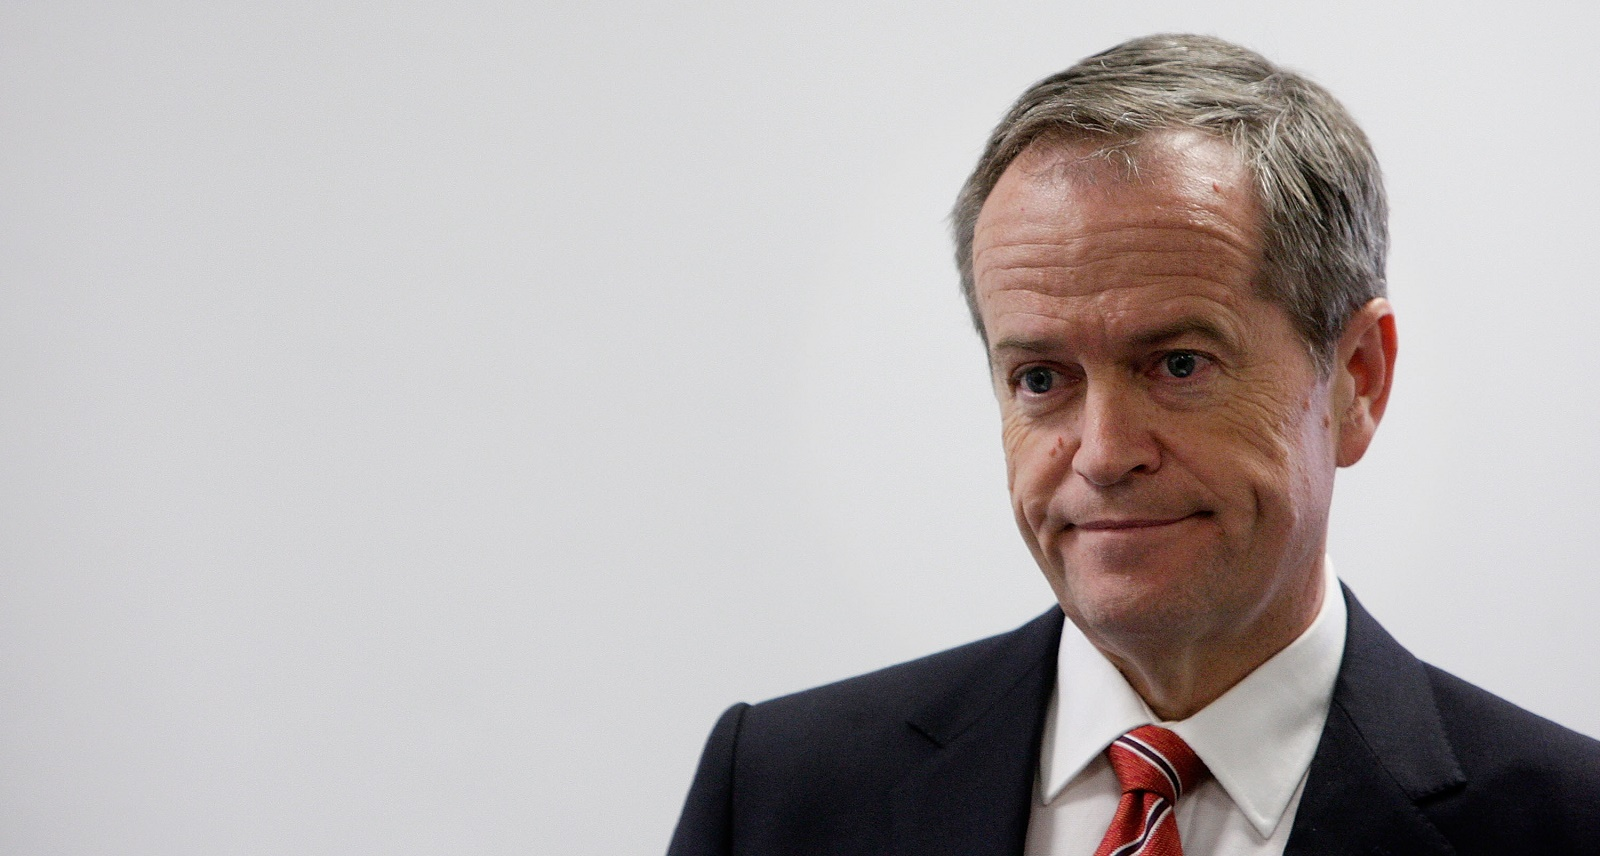 Bill Shorten Campaigns In Melbourne As Labor Falls Behind In Latest Polls